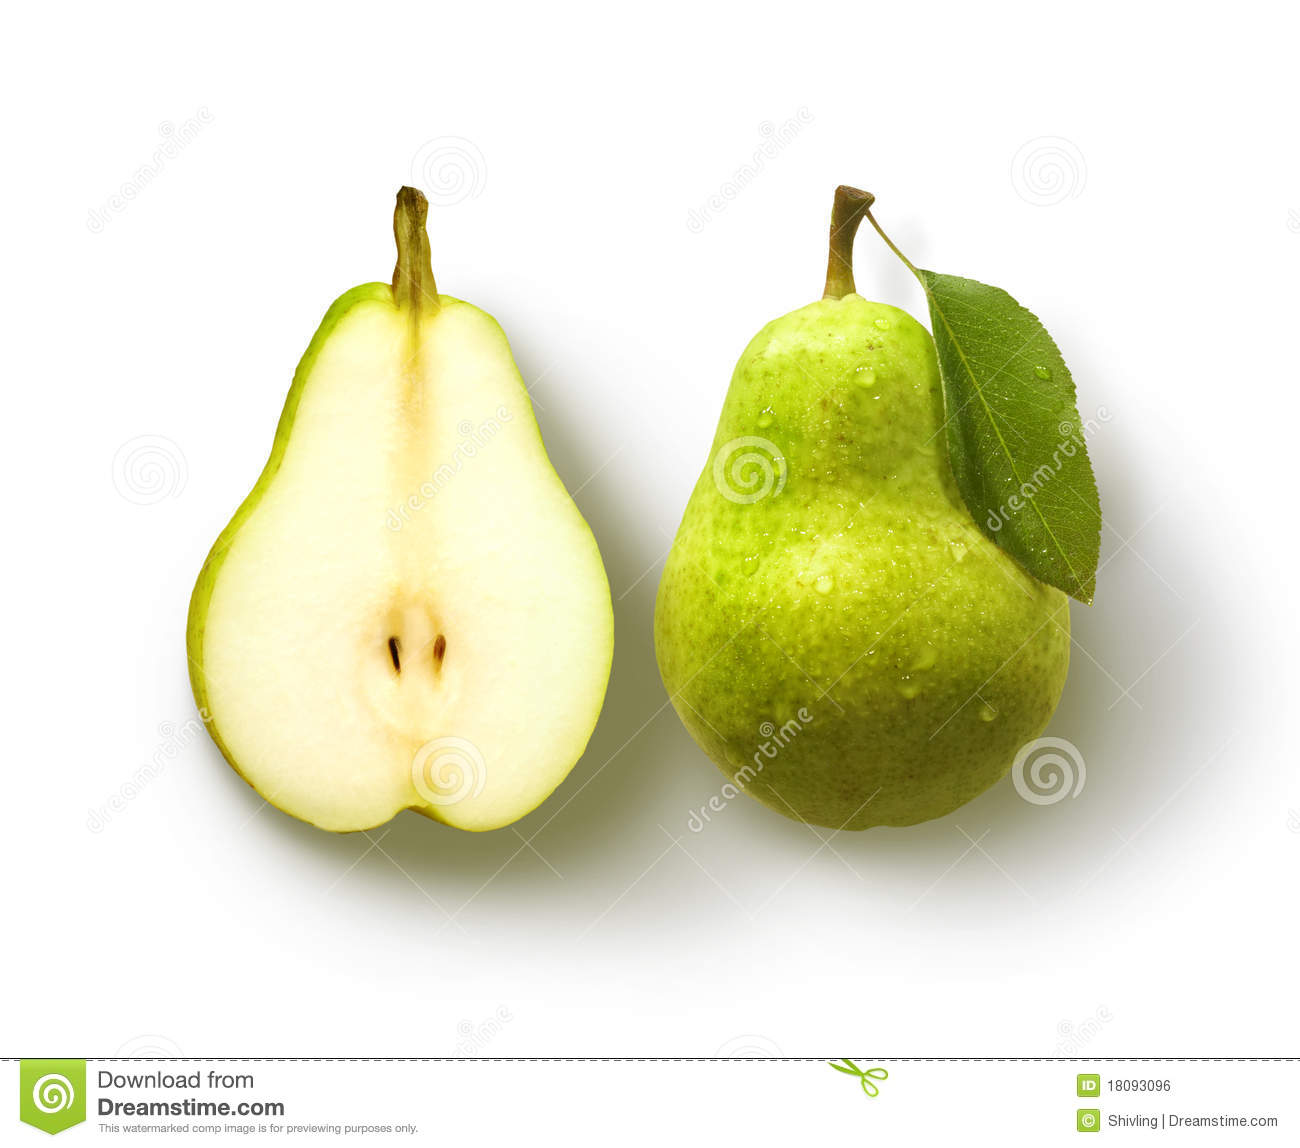 Pear And Half Pear Royalty Free Stock Image - Image: 18093096